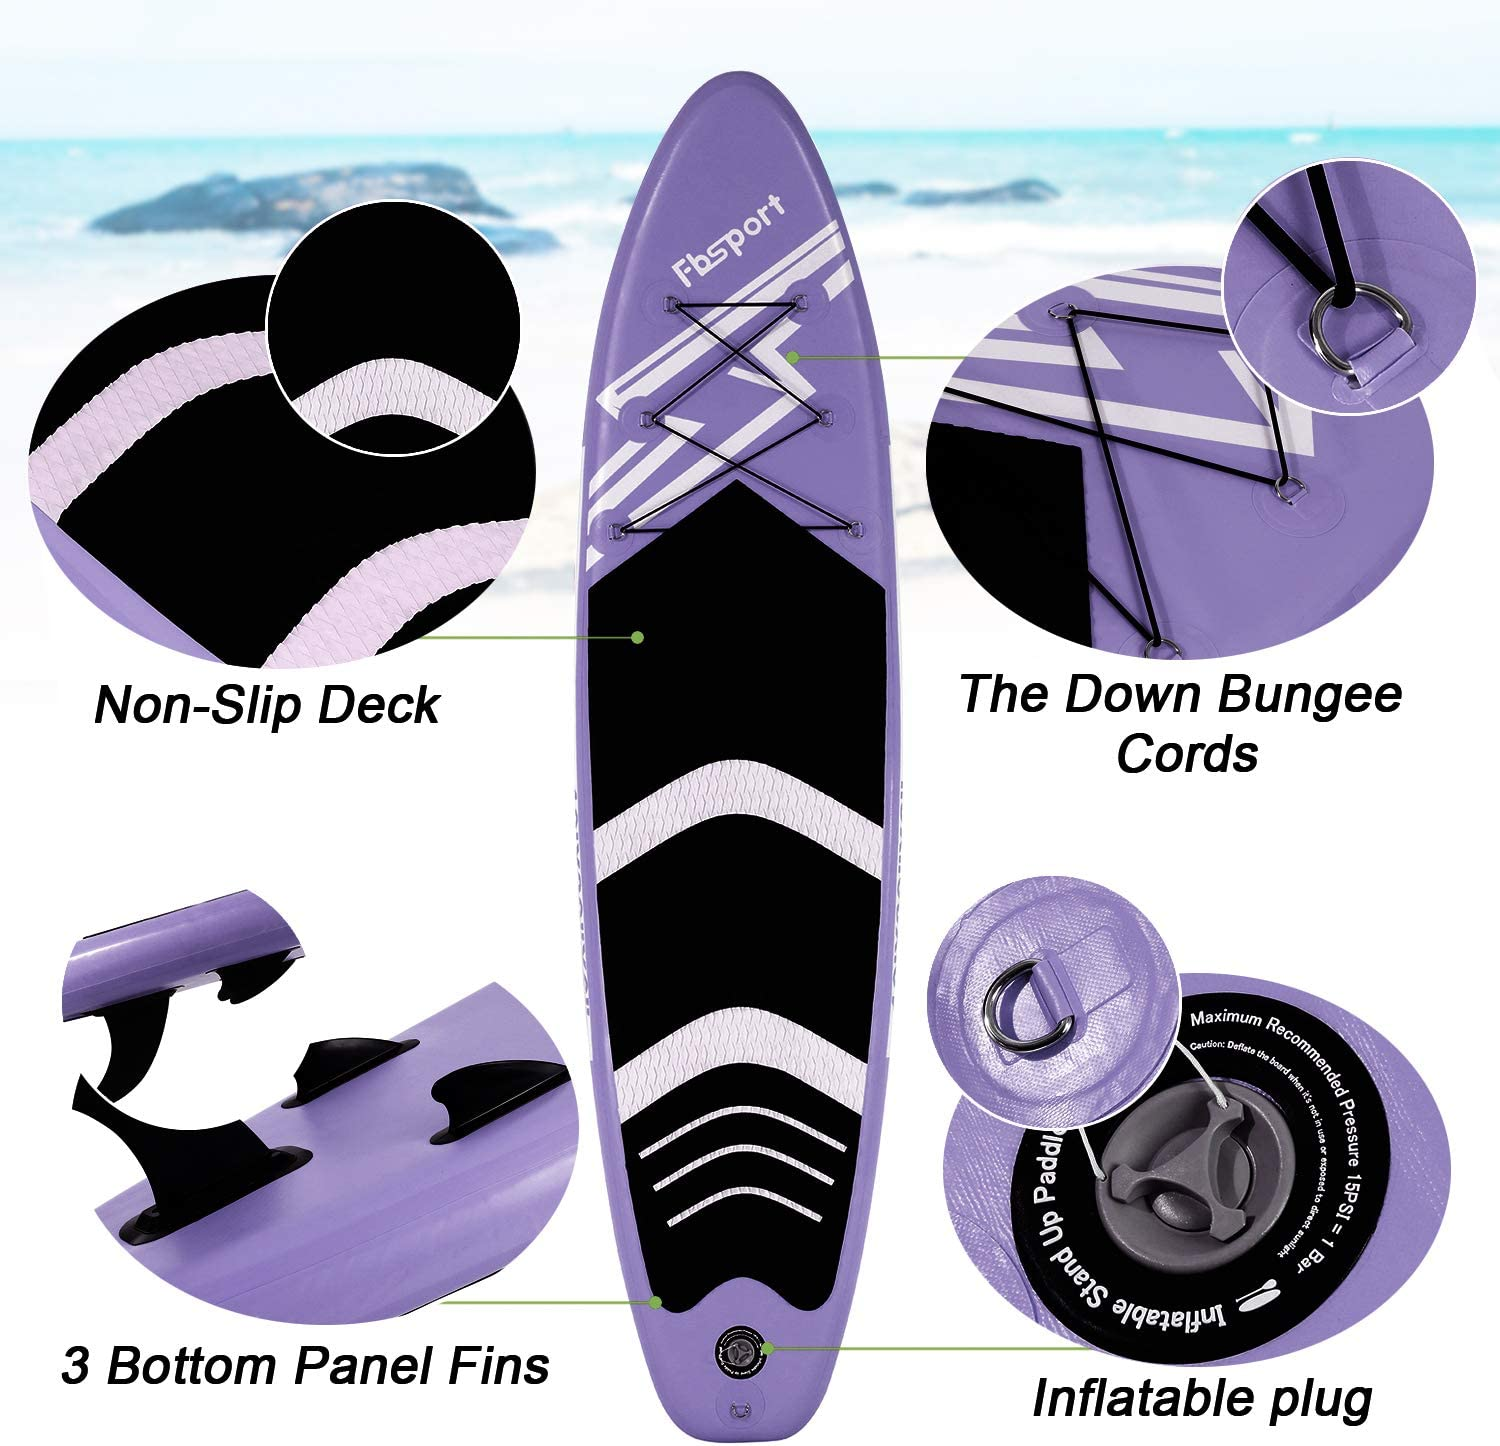 Wide Stance Non-Slip Deck Premium Inflatable Stand Up Paddle Board Standing Boat for Youth /& Adult with Durable SUP Accessories /& Carry Bag 6 inches Thick Surf Control Paddle and Pump Leash